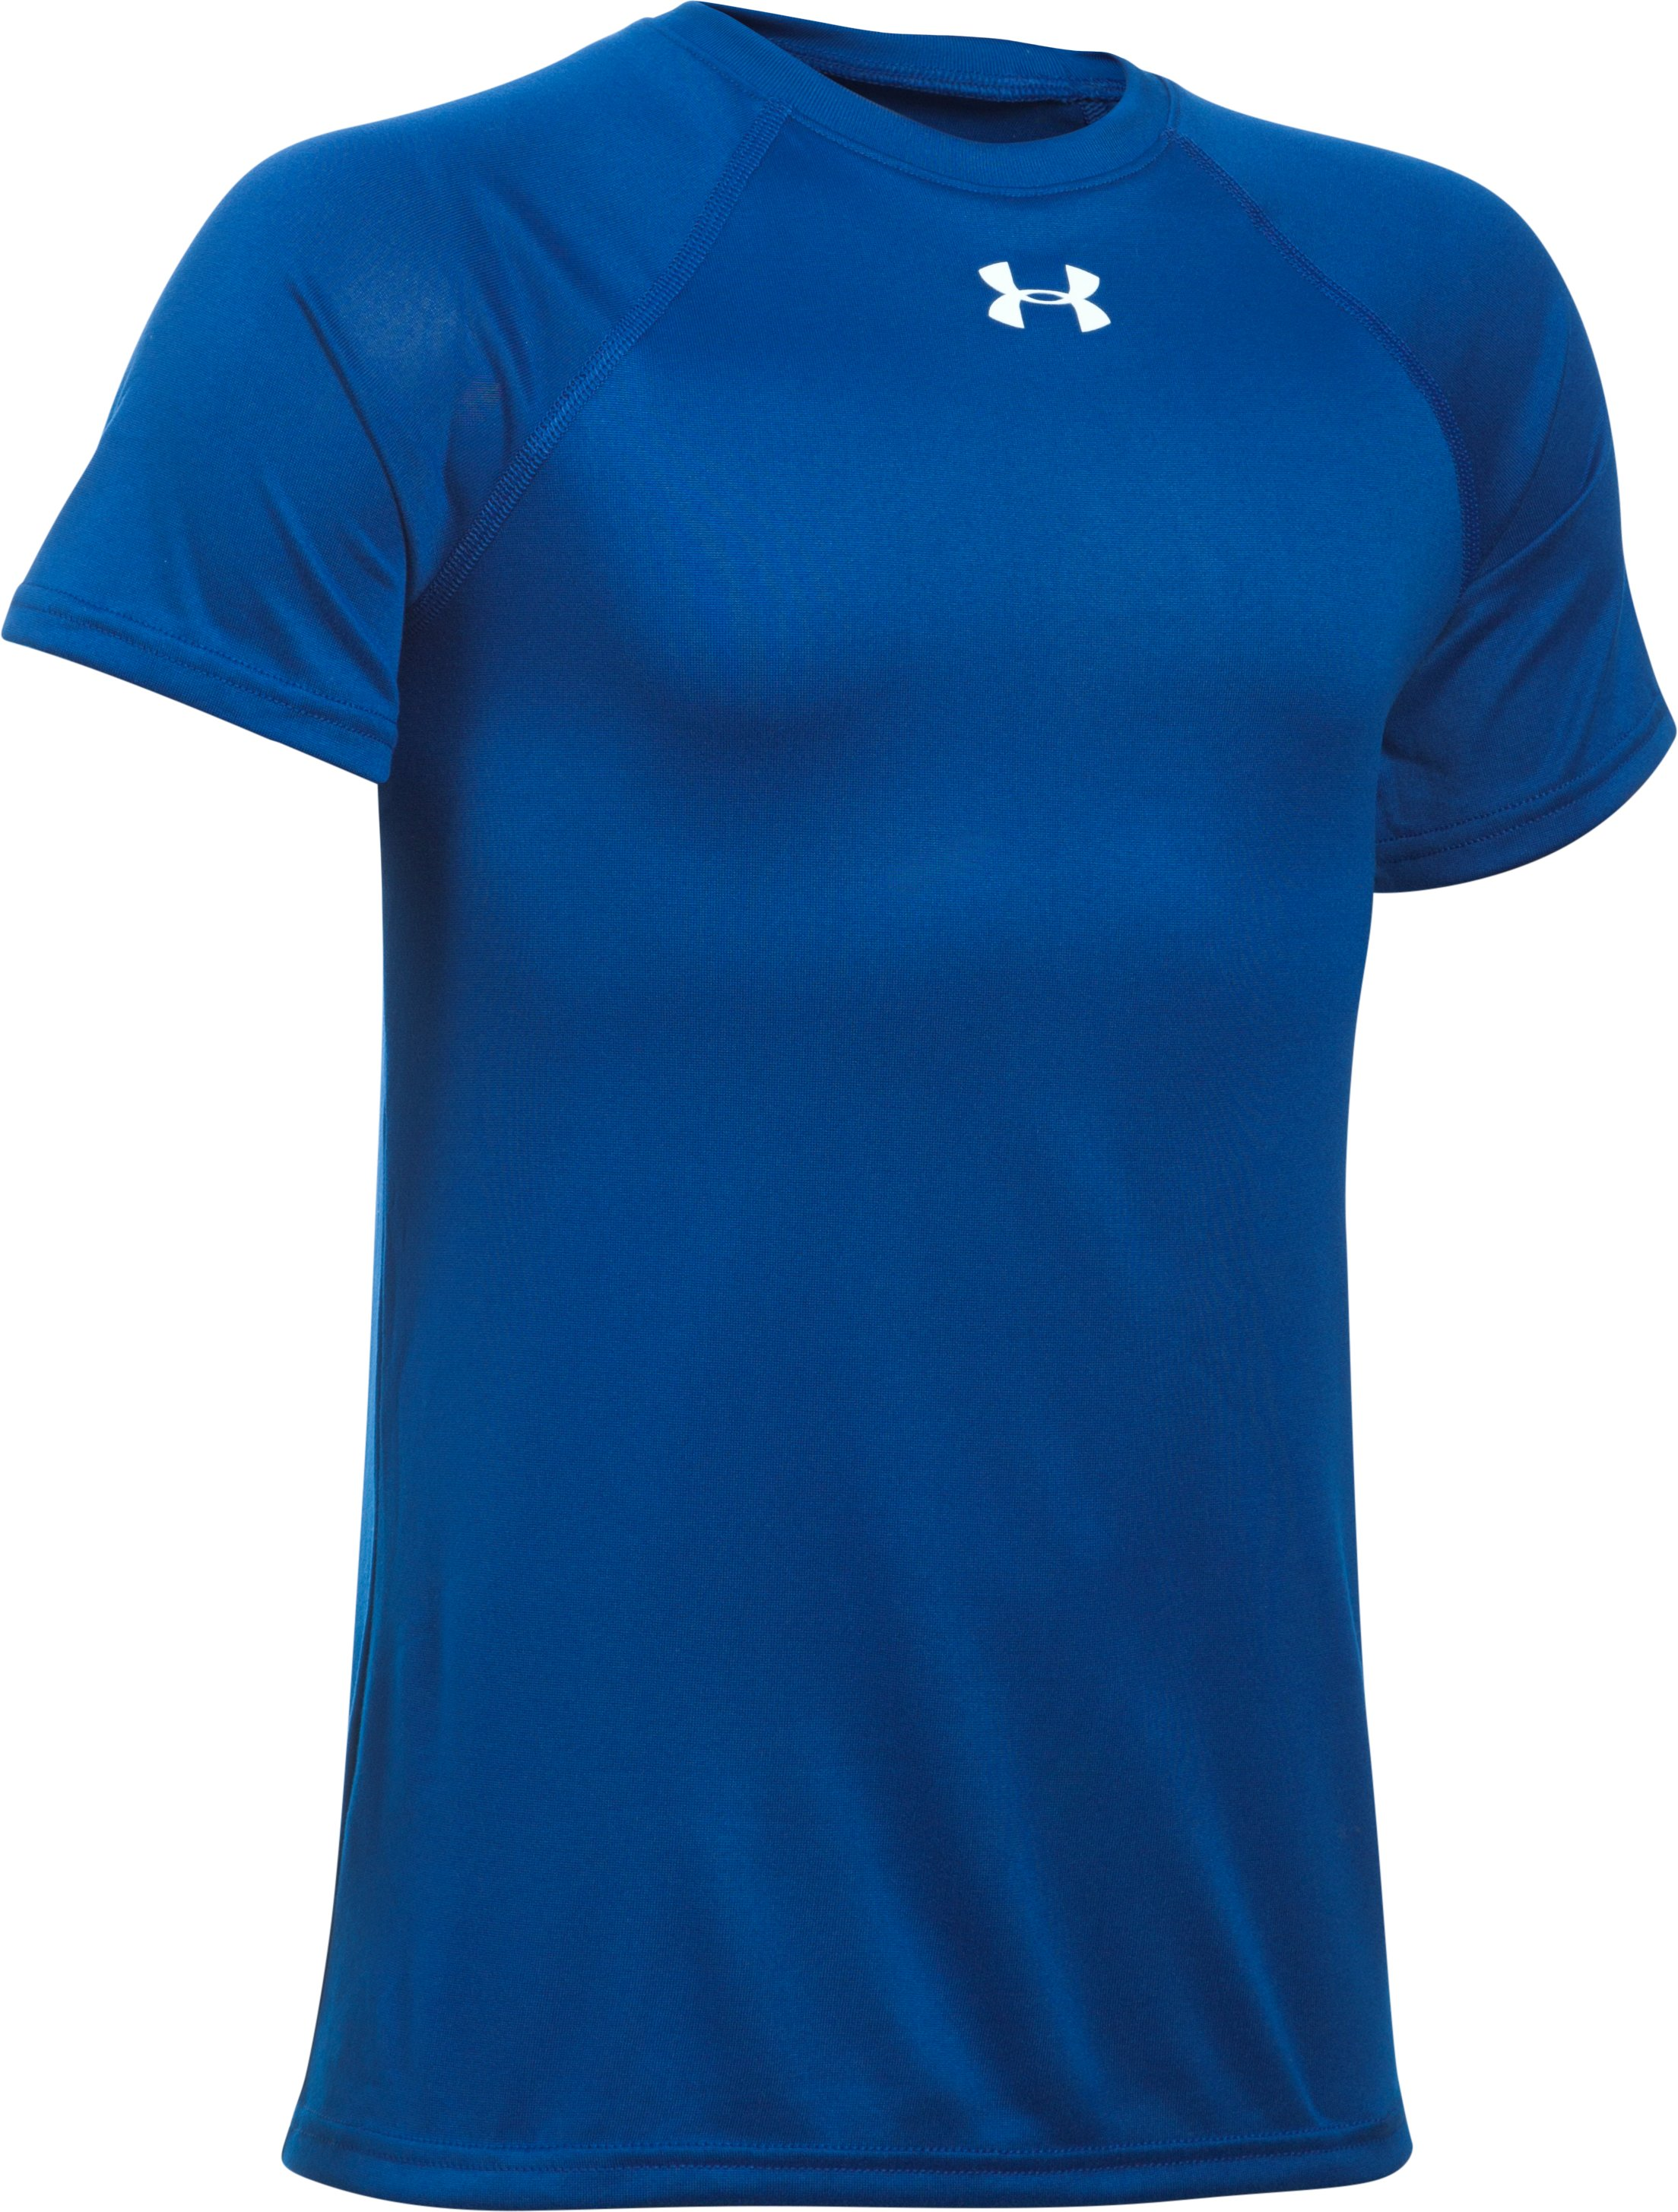 Boys' UA Locker Short Sleeve T-Shirt, Royal